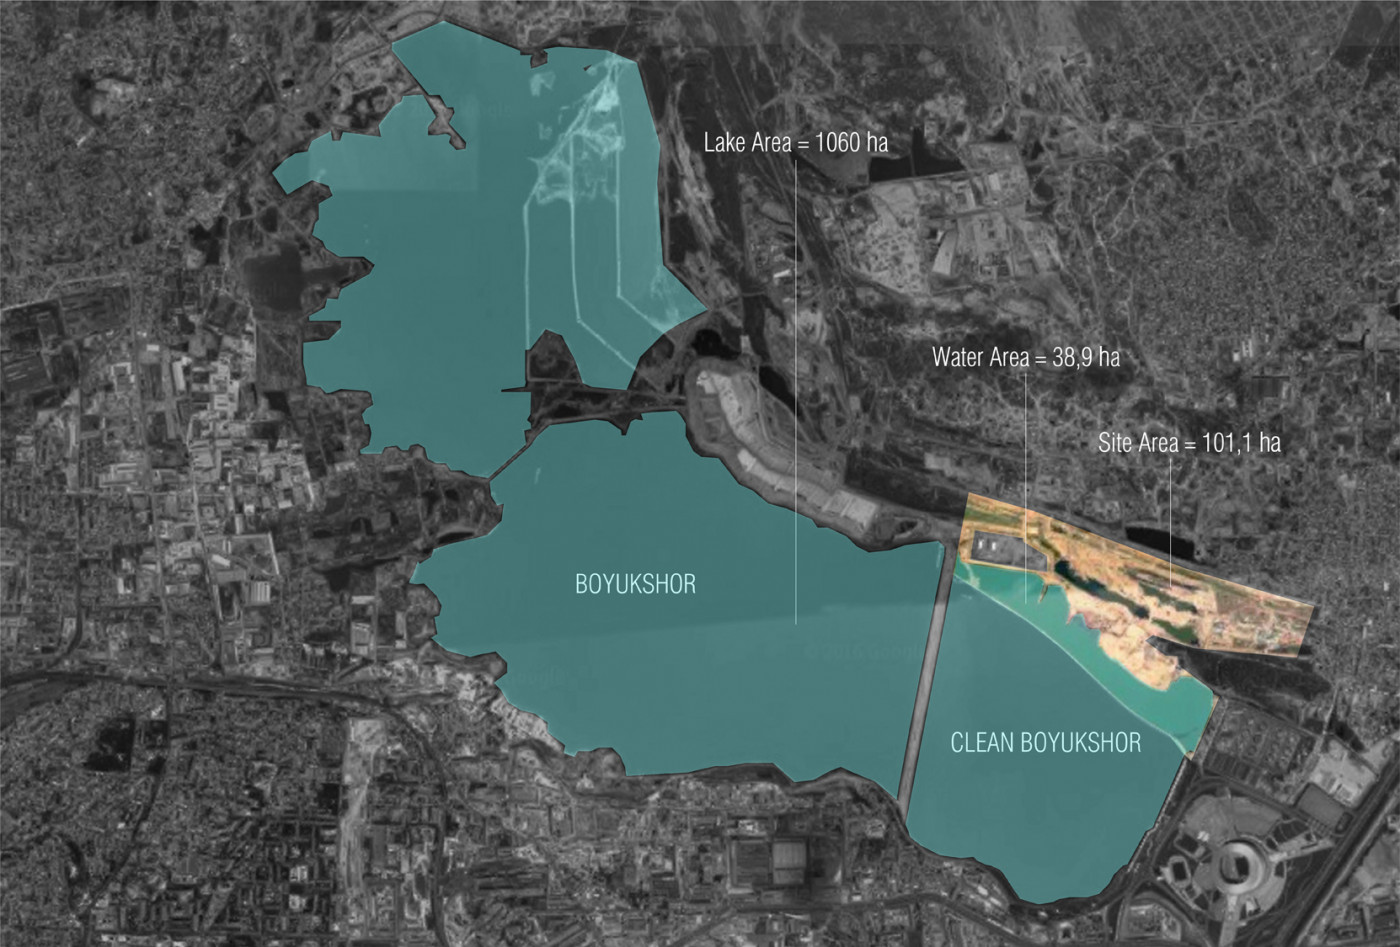 The lake and surroundings / Residential area on the territory of Boyukshor lake